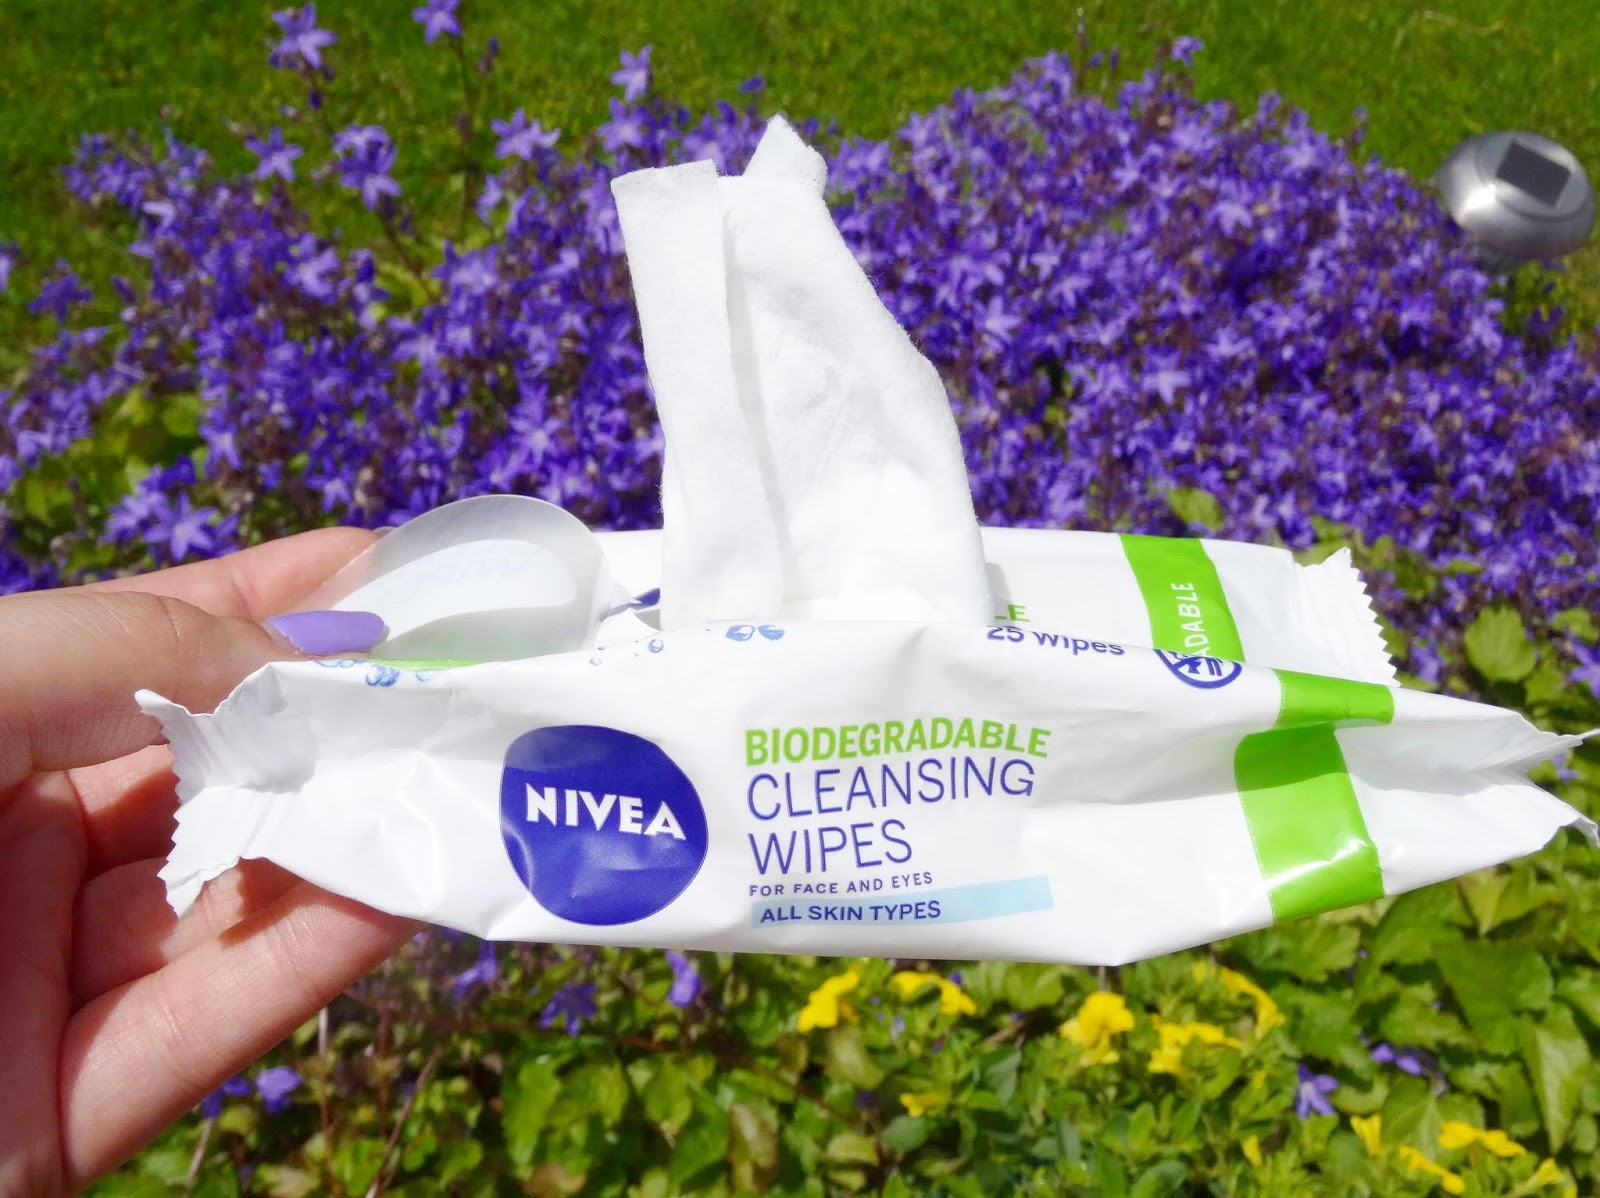 NEW Biodegradable Cleansing Wipes from Nivea